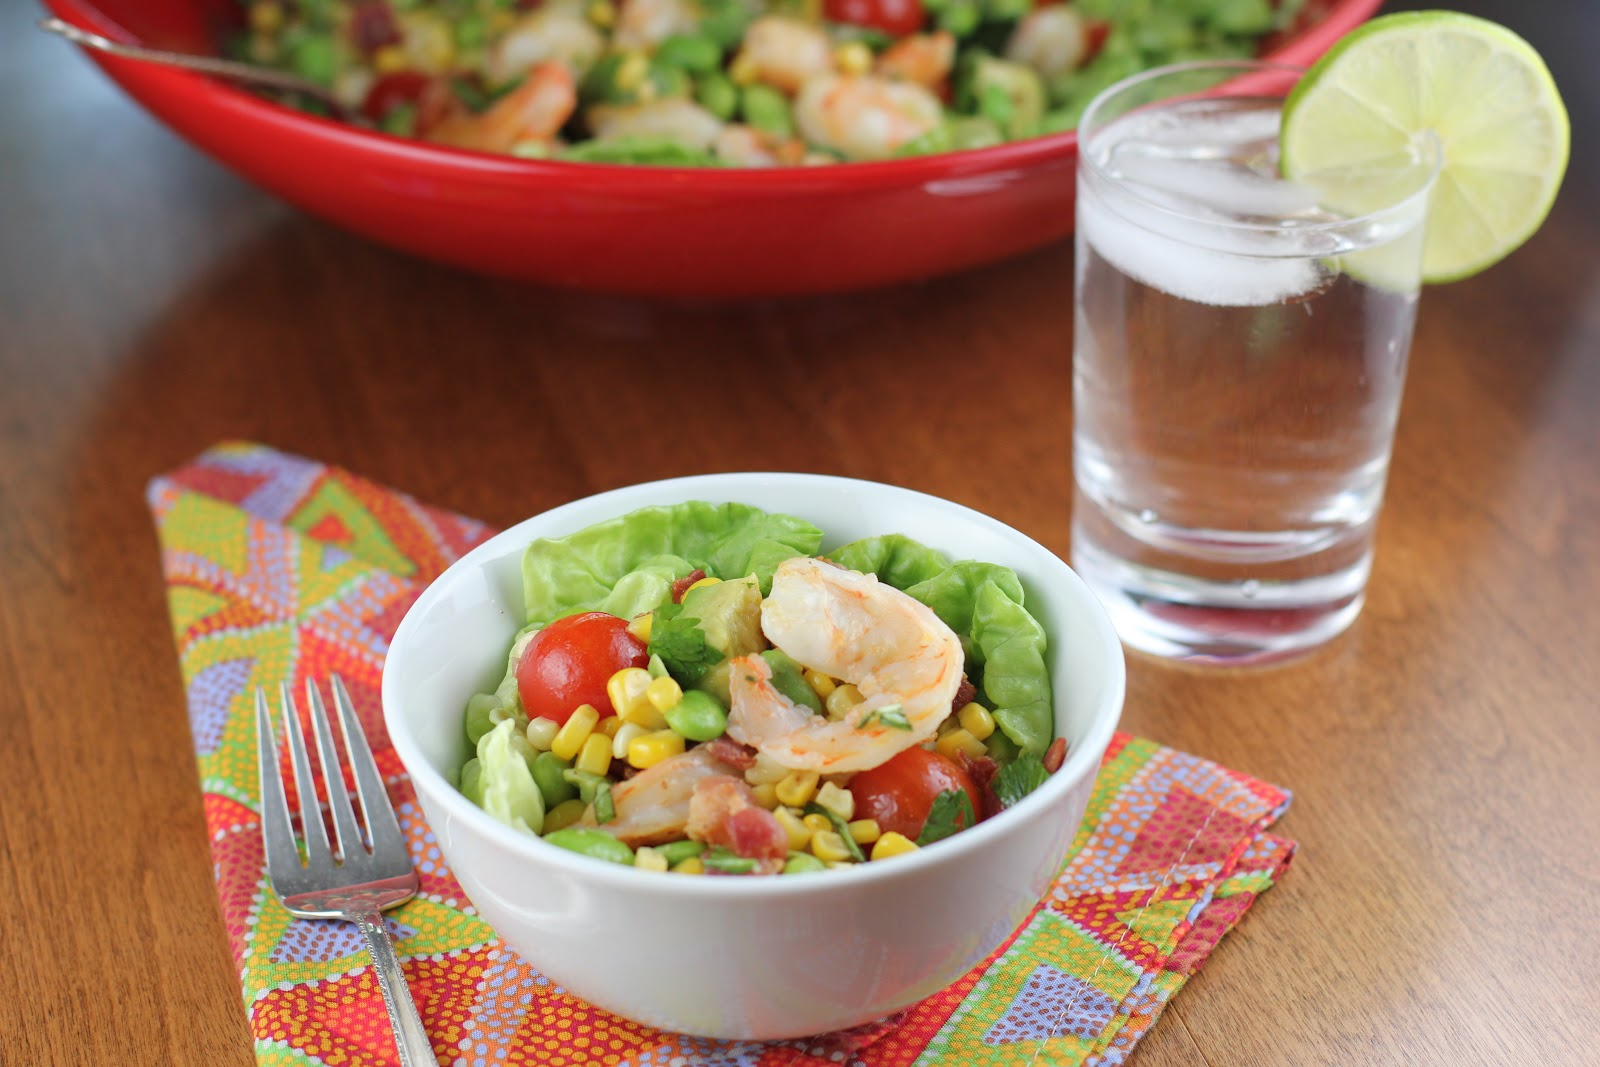 ... Food Advocate: Shrimp Chopped Salad with Corn, Bacon, and Avocado